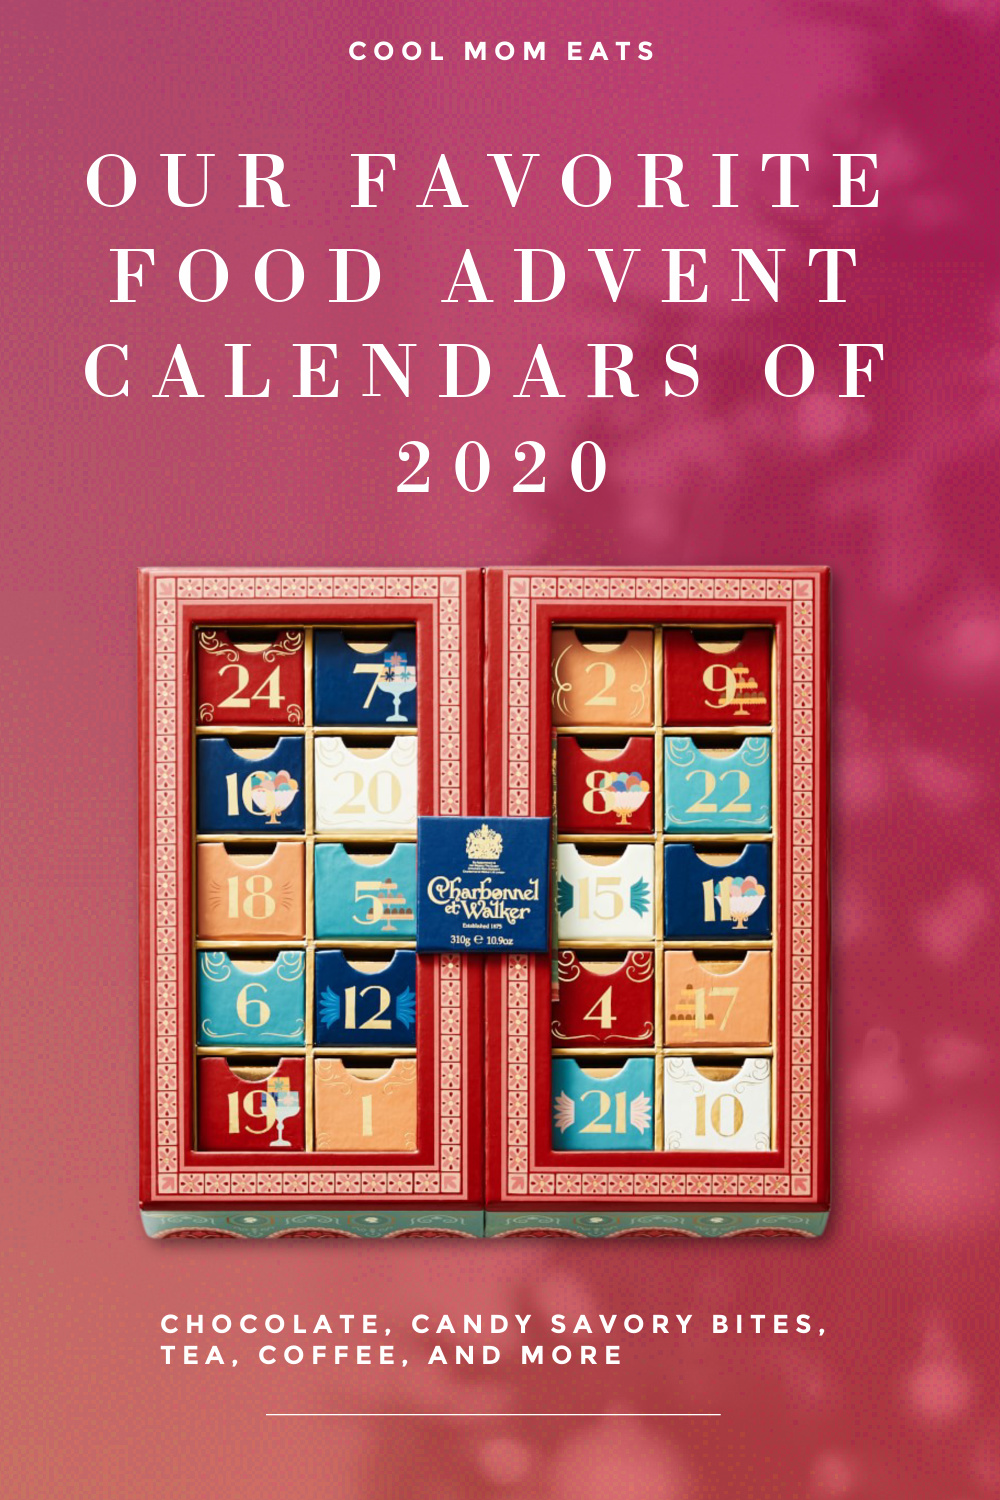 Our favorite food advent calendars of 2020: 15+ ideas from chocolate to savory bites, coffee, tea, candy and more | coolmomeats.com